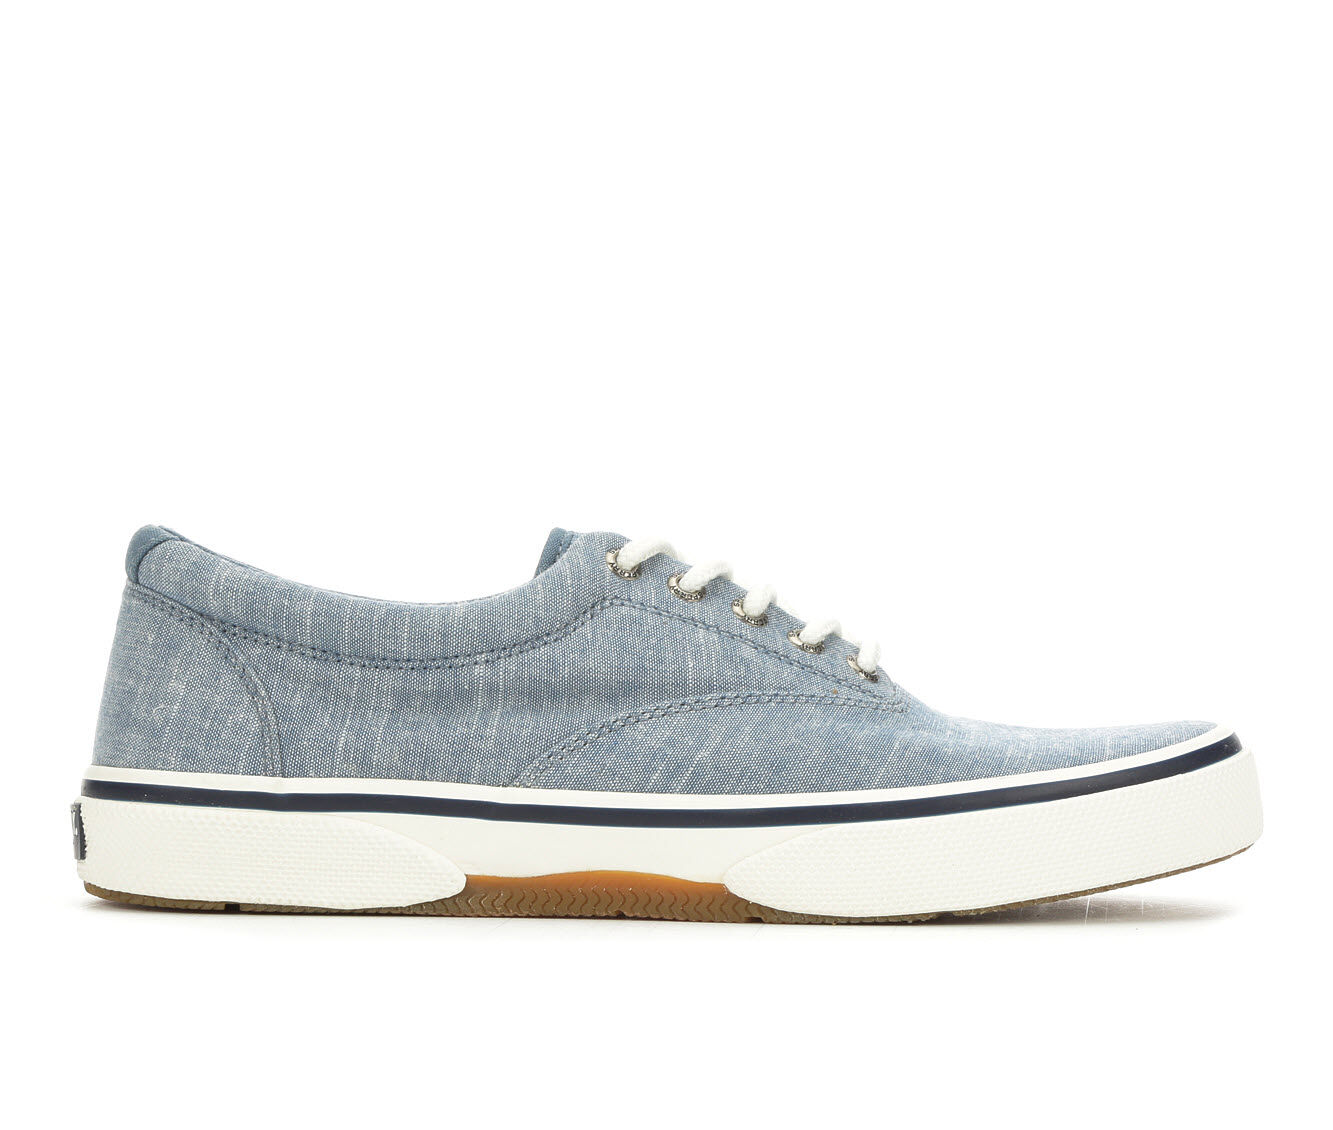 Find New Arrivals Men's Sperry Halyard Laceless Casual Shoes Navy Chambray